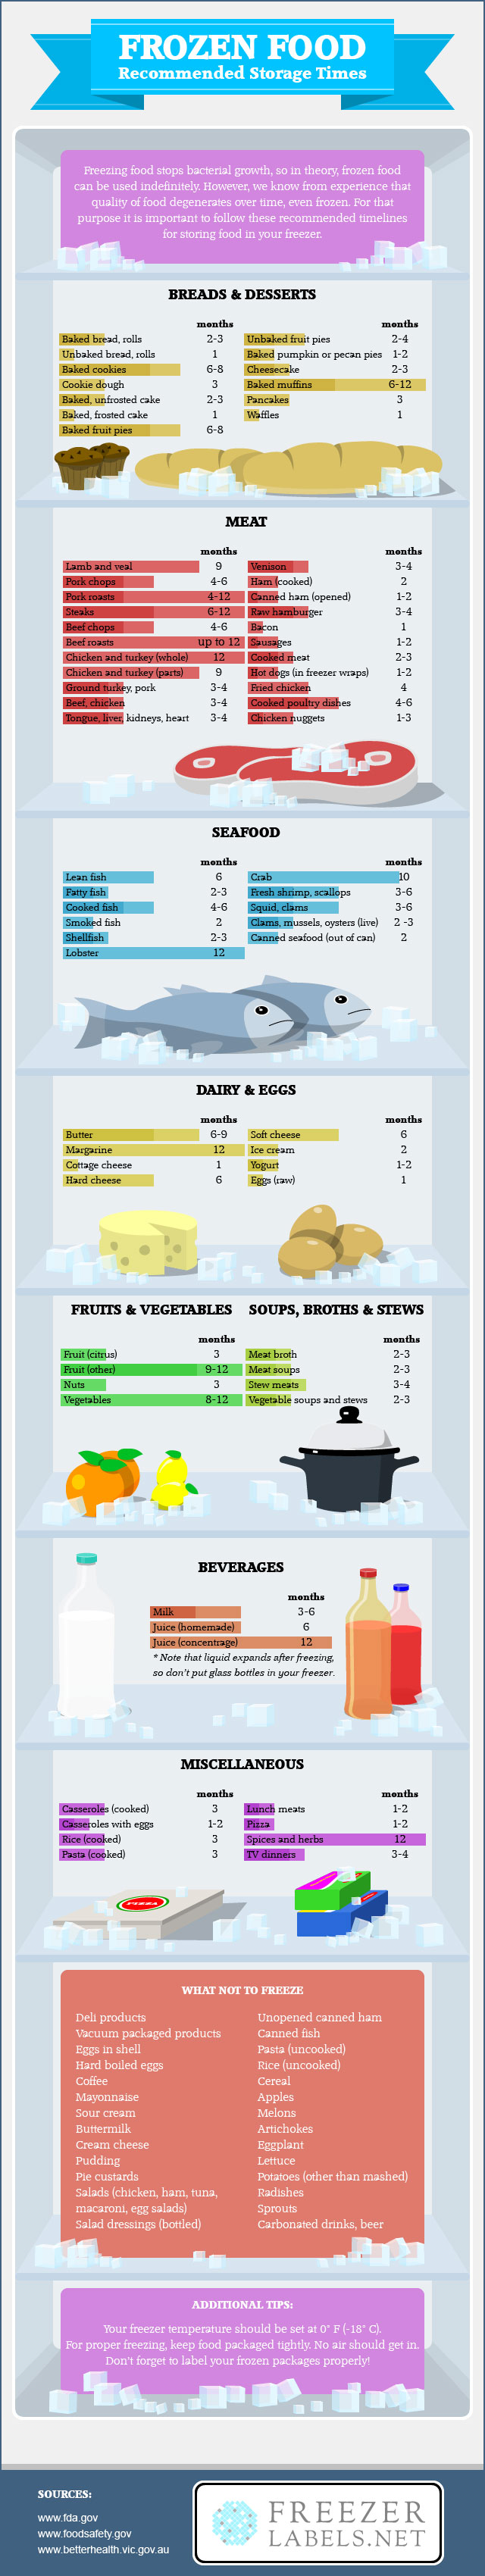 frozen food storage times How Long You Can Freeze Various Foods For in One Giant Chart